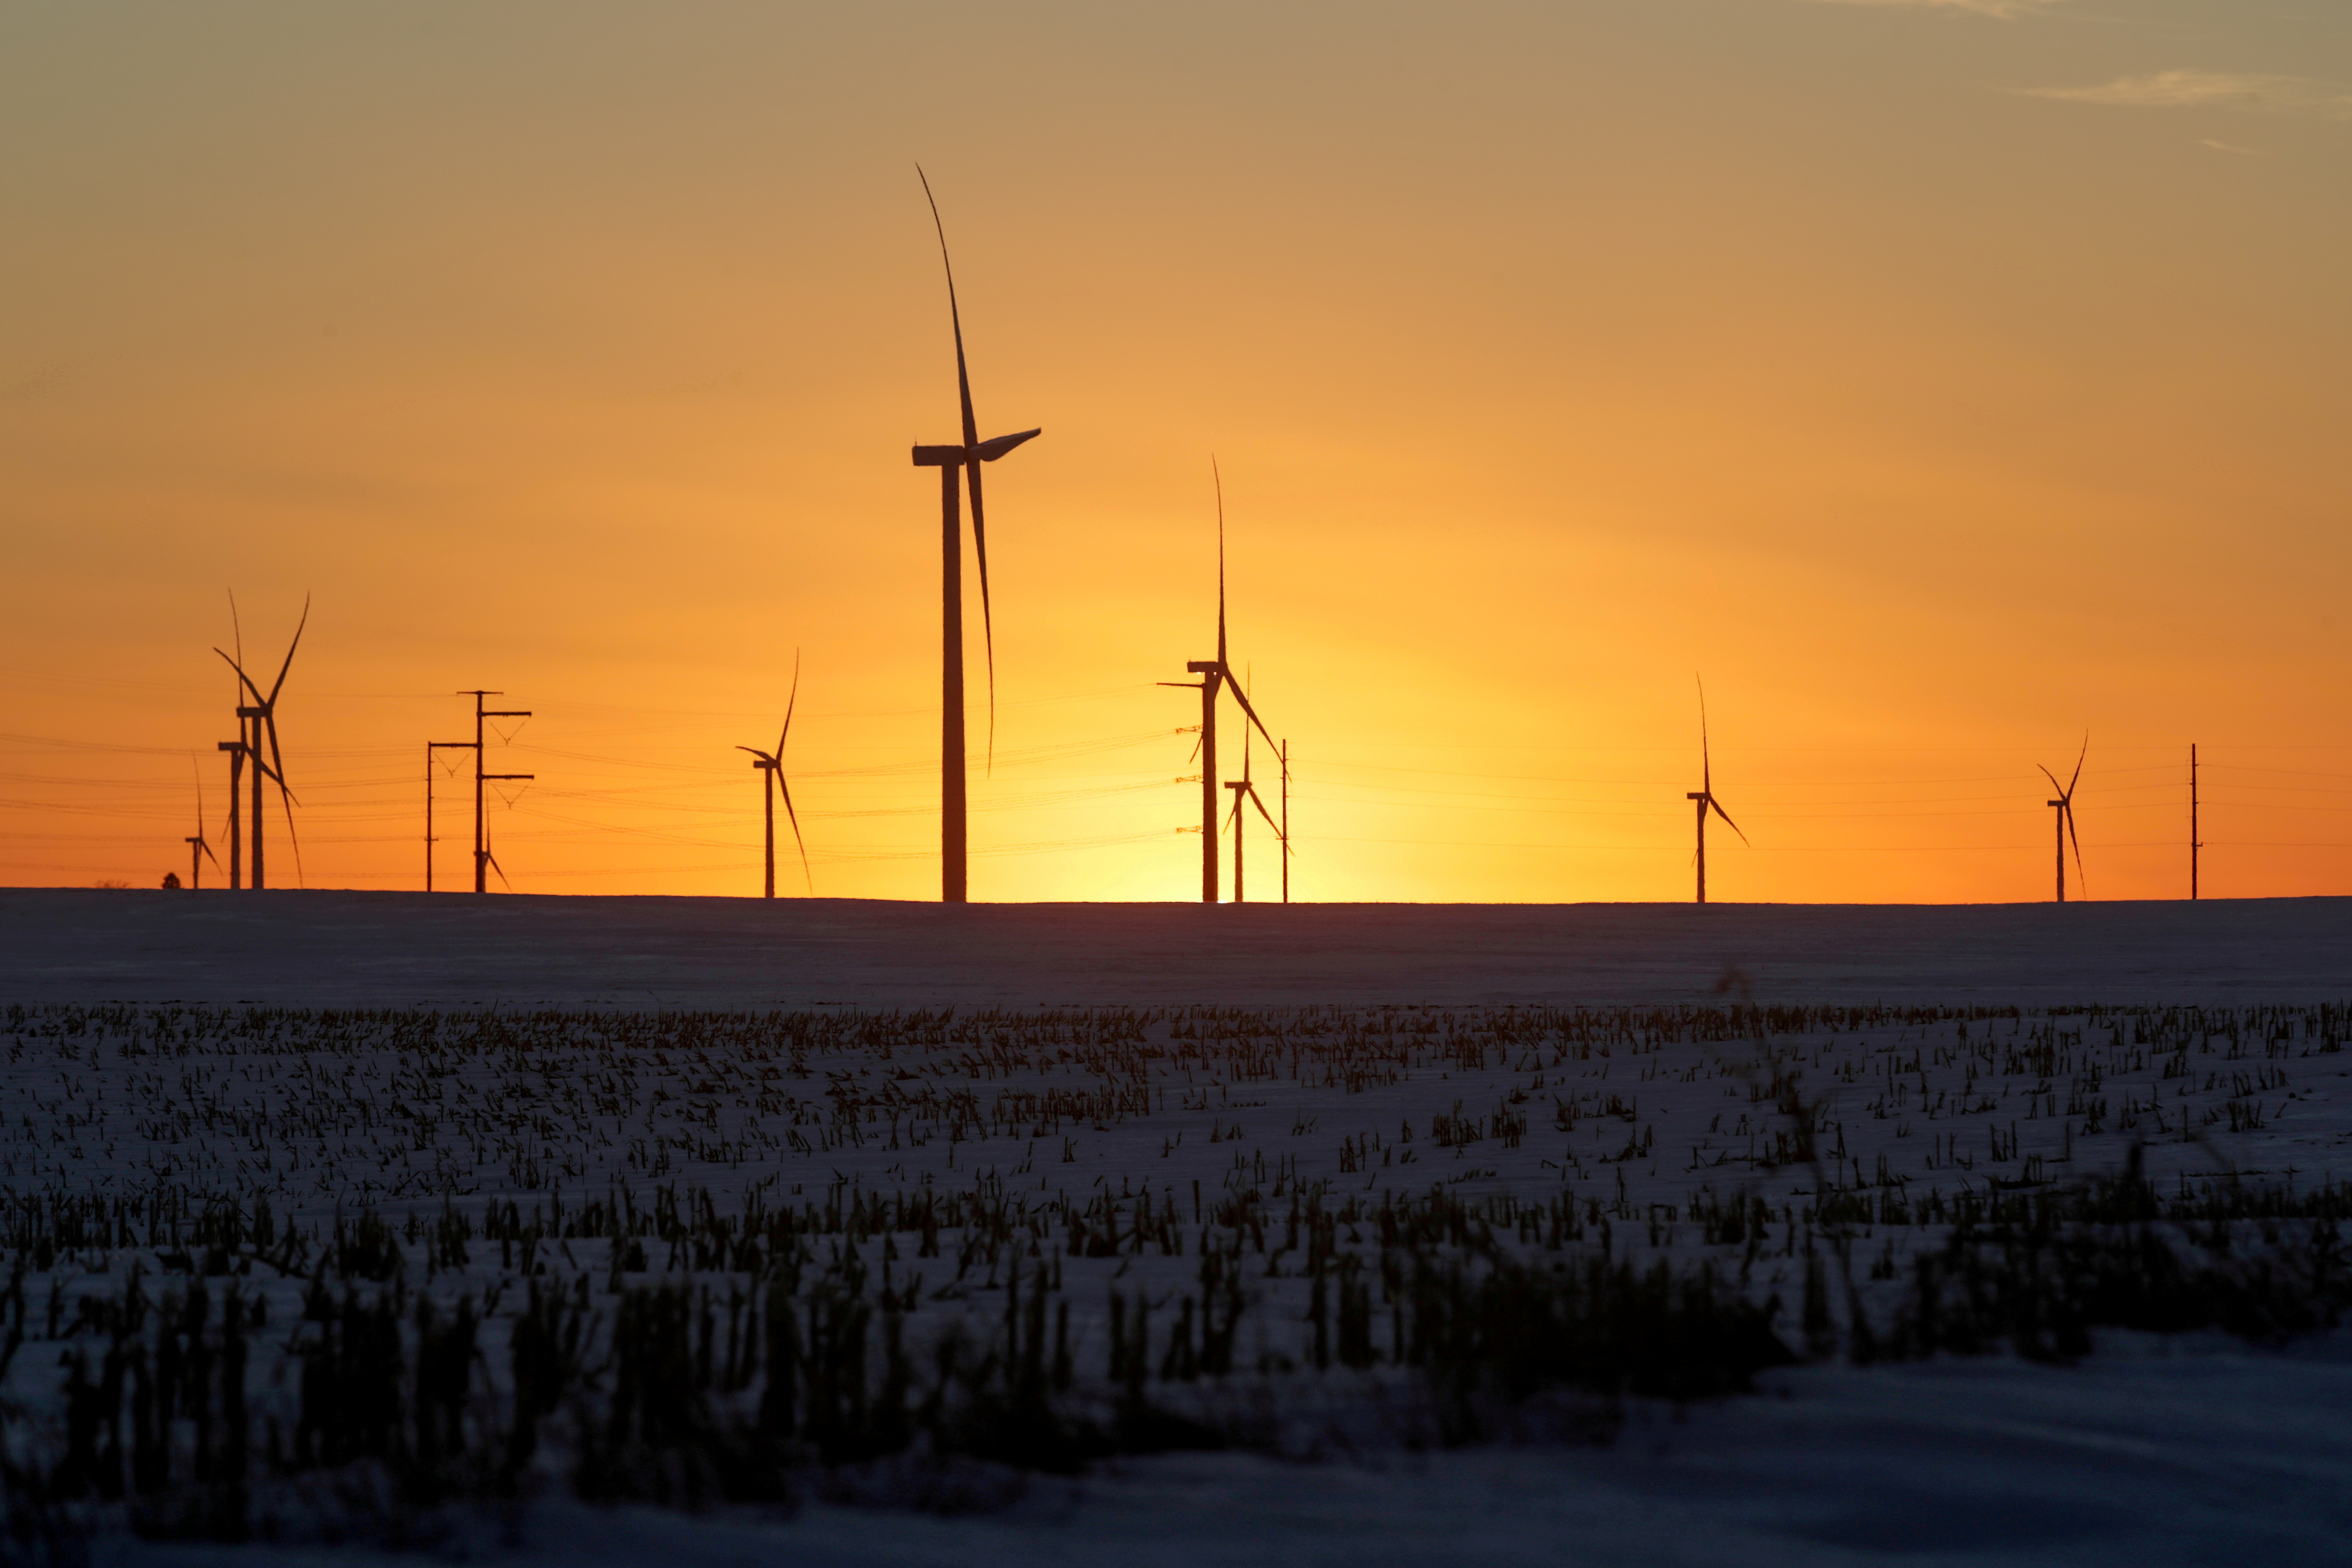 A wind farm shares space with corn fields the day before the Iowa caucuses, where agriculture and clean energy are key issues, in Latimer, Iowa, U.S. February 2, 2020. REUTERS/Jonathan Ernst/File Photo